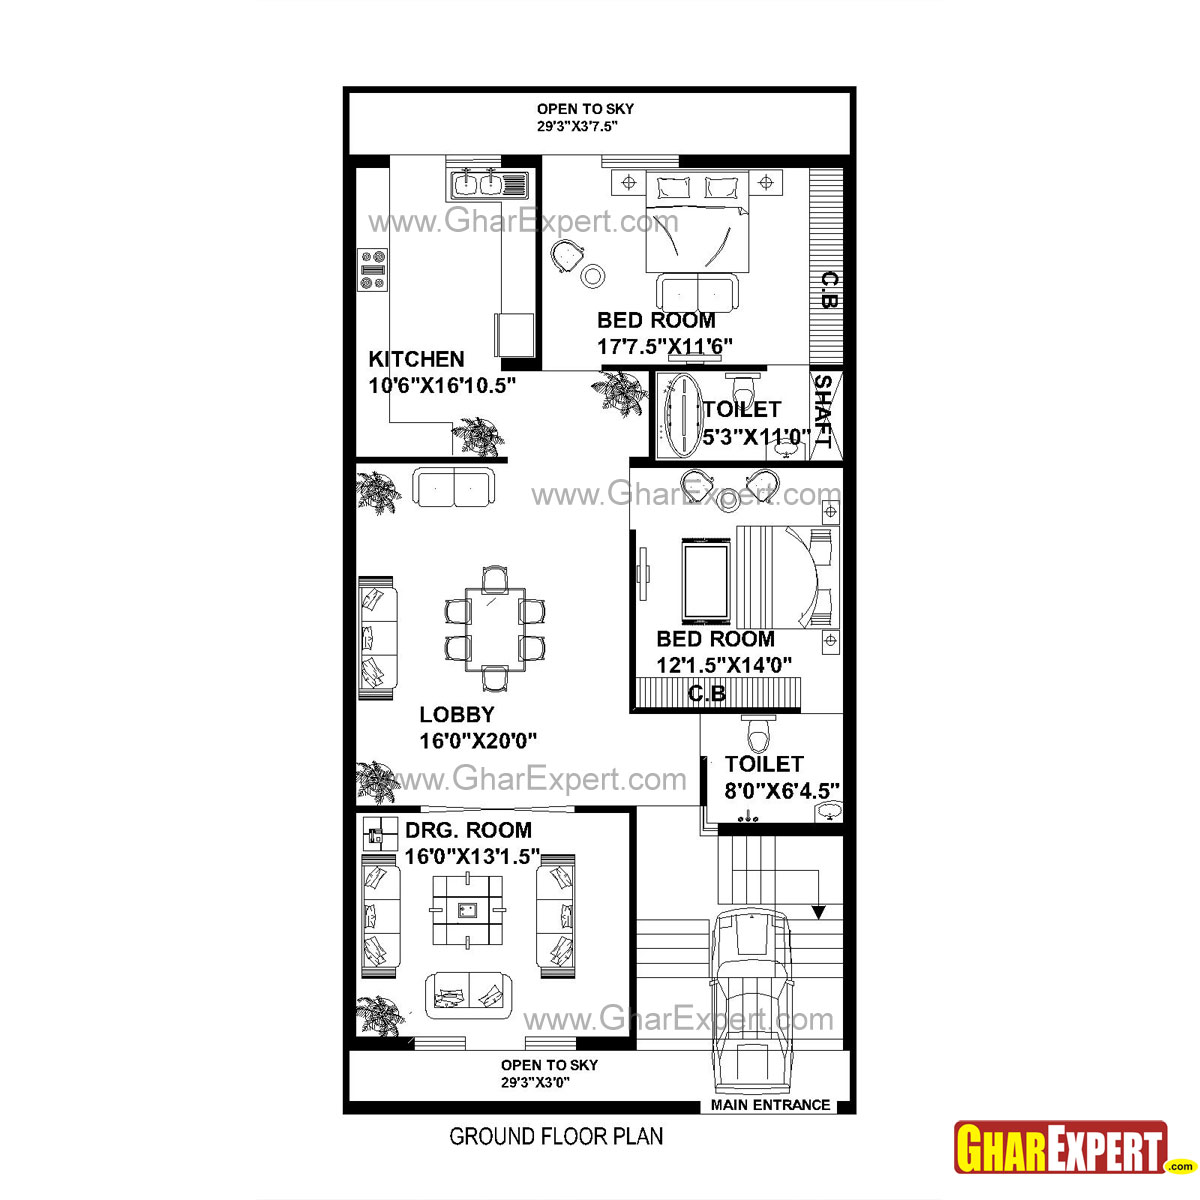 House plan for 30 feet by 60 feet plot plot size 200 200 yards house design